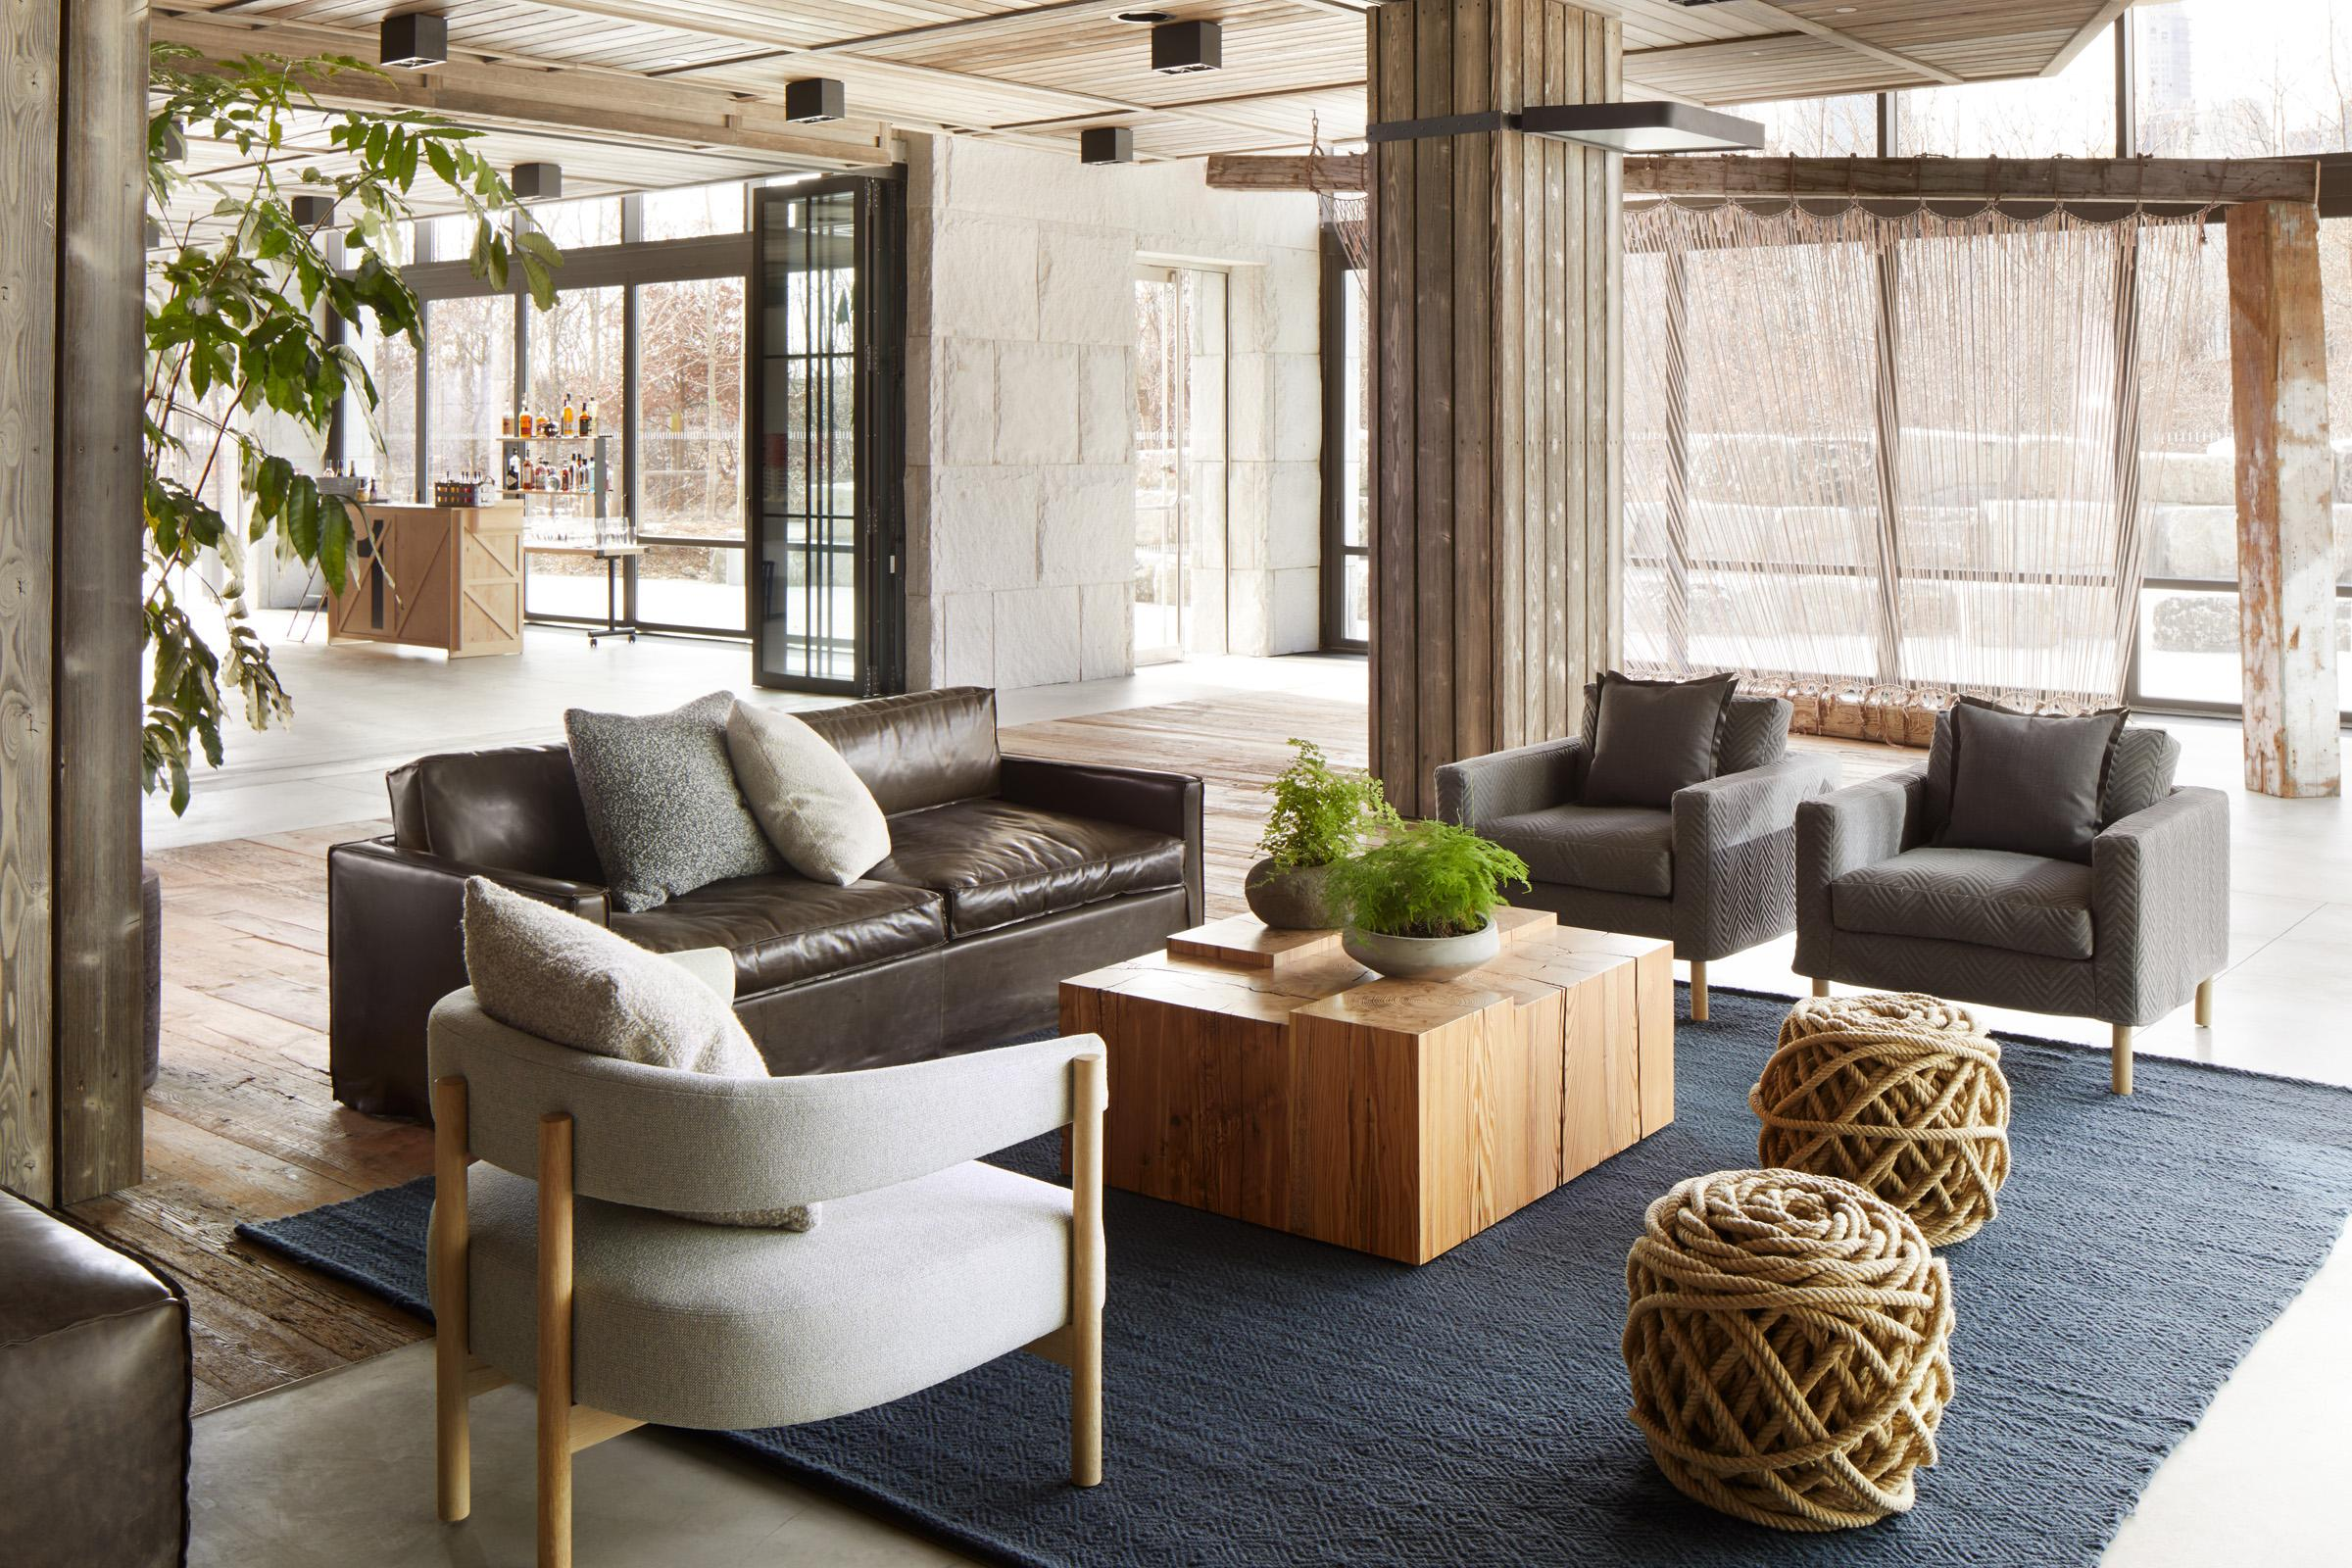 living room furniture brooklyn sets for uhuru 1 hotels at hotel bridge our design embraces local community the history of neighborhood and natural surroundings